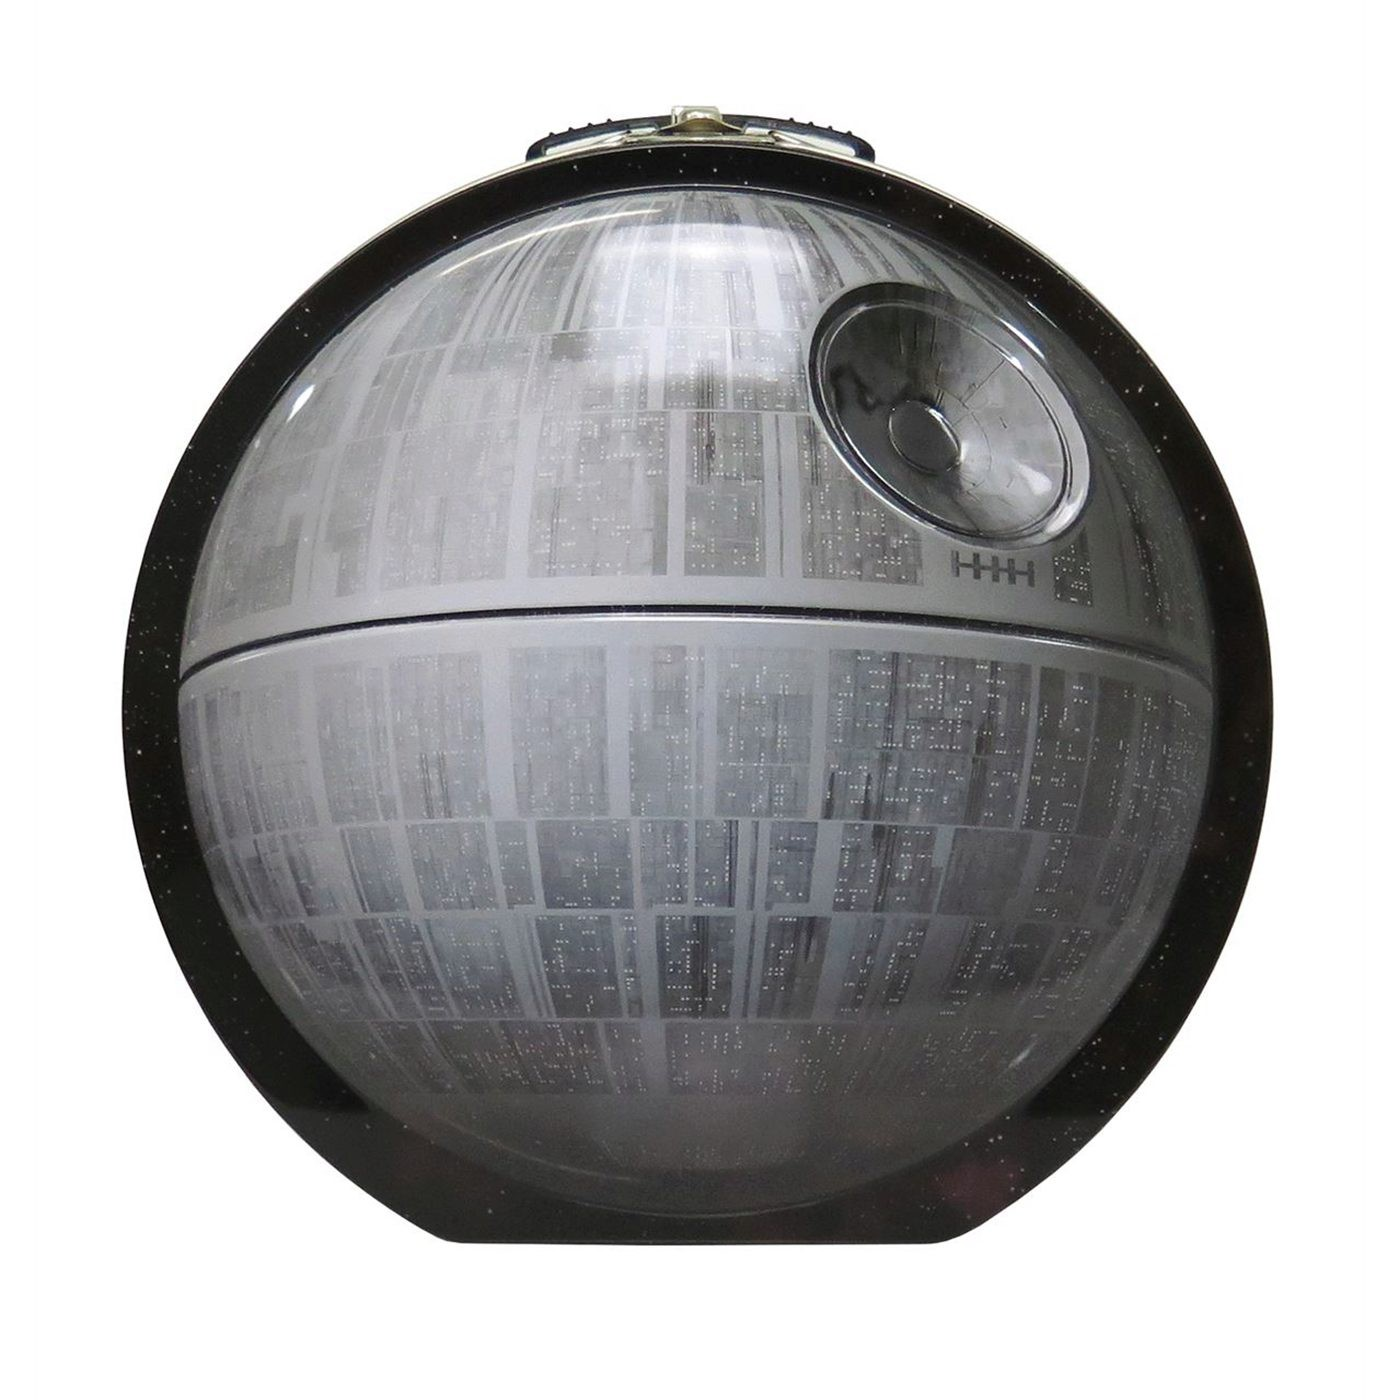 Star Wars Death Star Tin Lunch Box